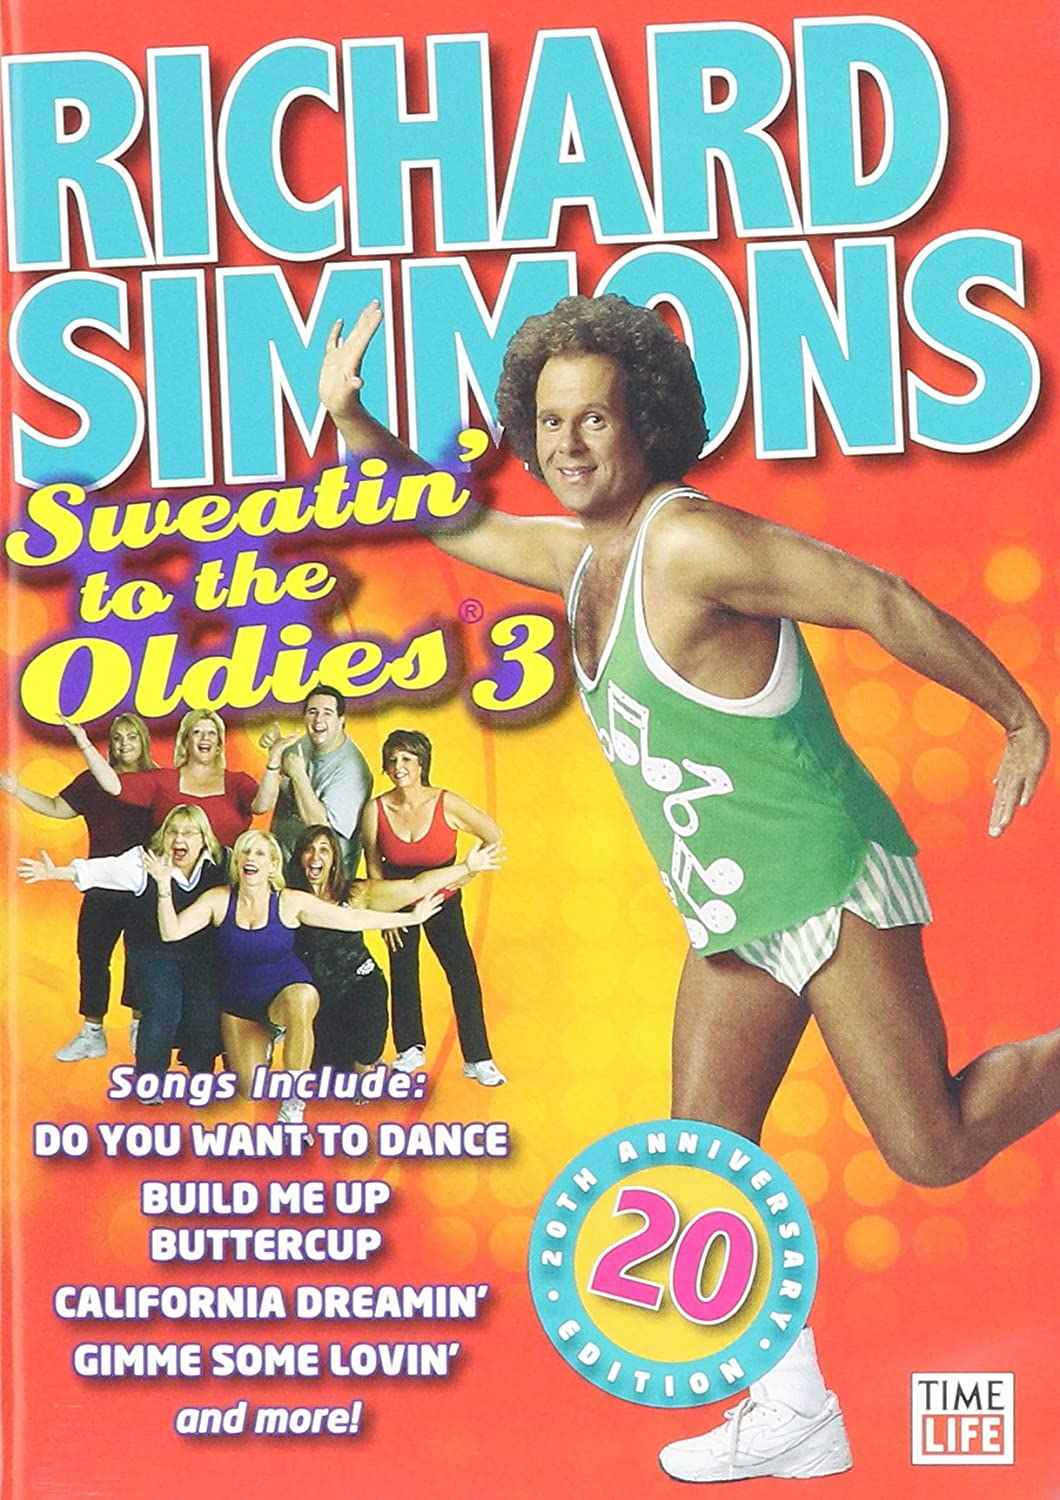 Richard Simmons: Sweatin' to Oldies the 3 All items free shipping San Francisco Mall